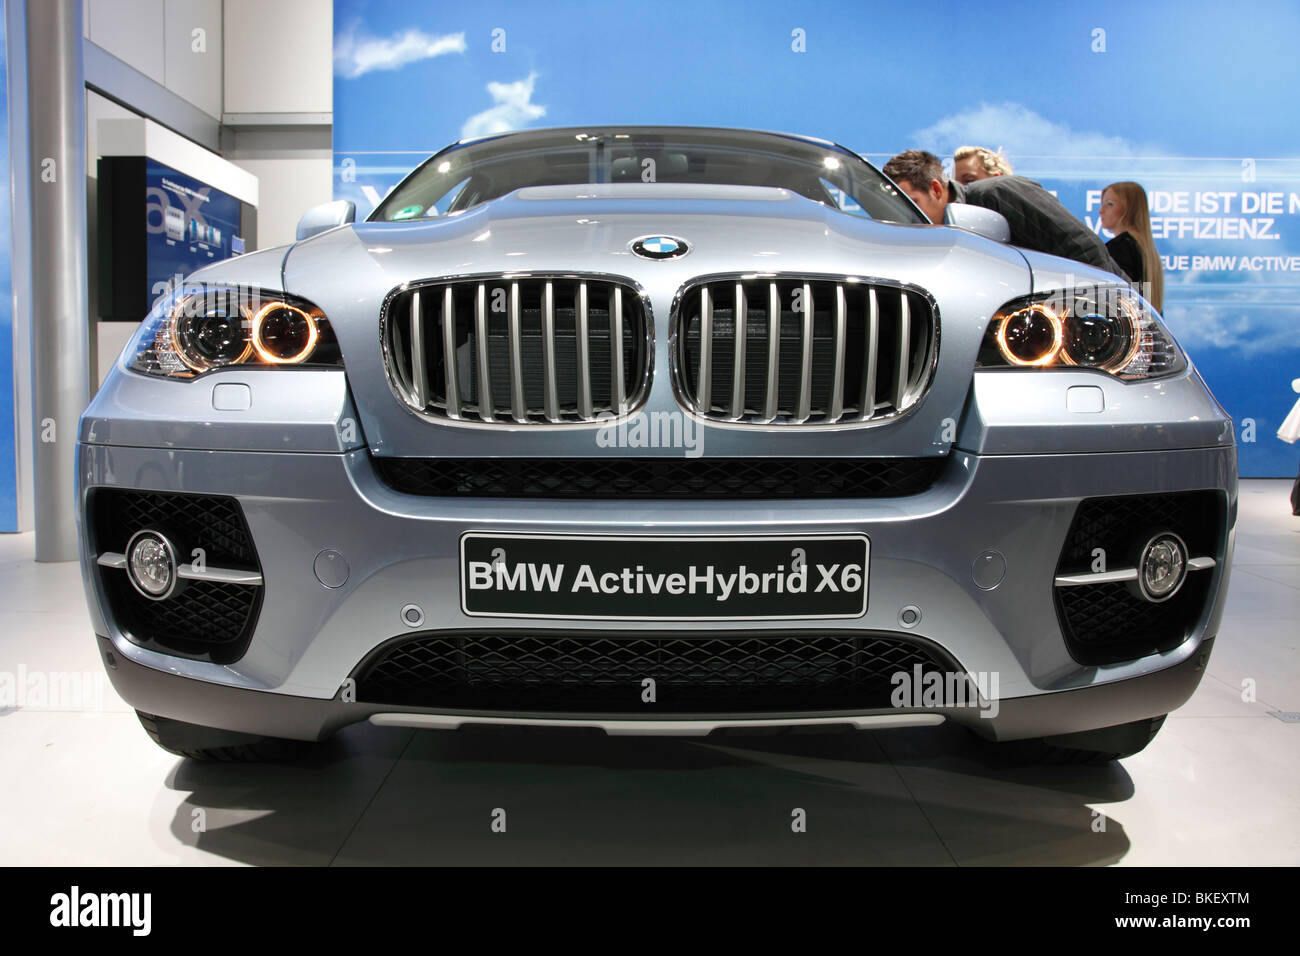 BMW ActiveHybrid X6 at the Auto Mobil International (AMI); Motor Show 2010 in Leipzig, Germany Stock Photo